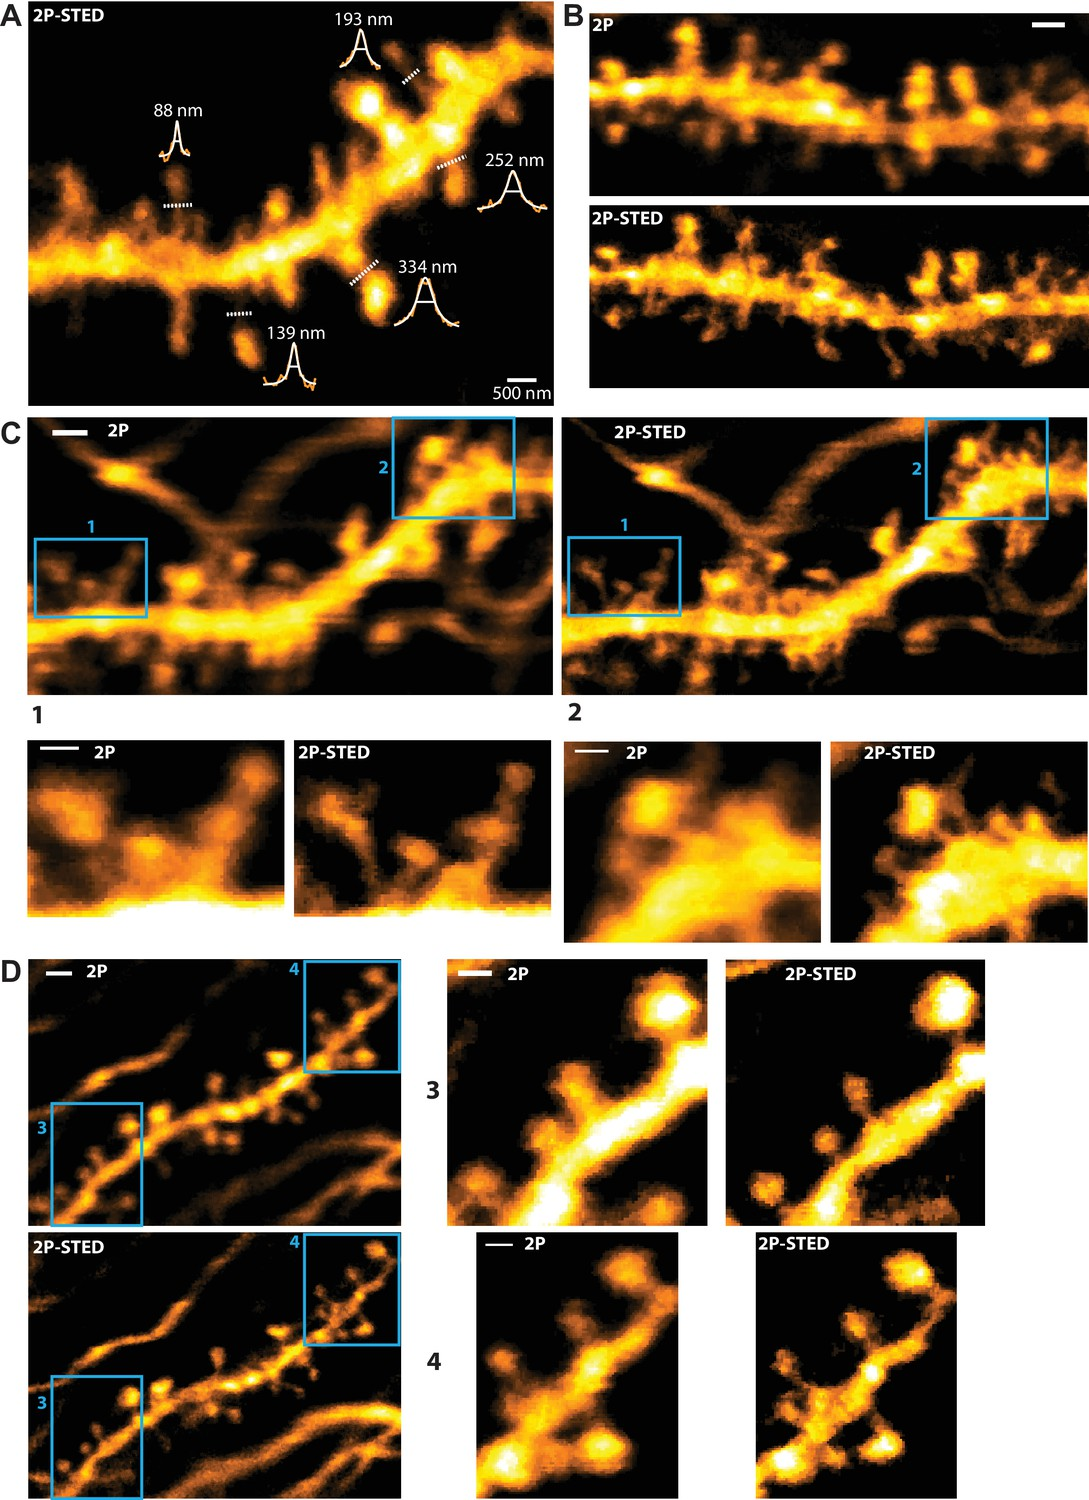 Chronic 2P-STED imaging reveals high turnover of dendritic